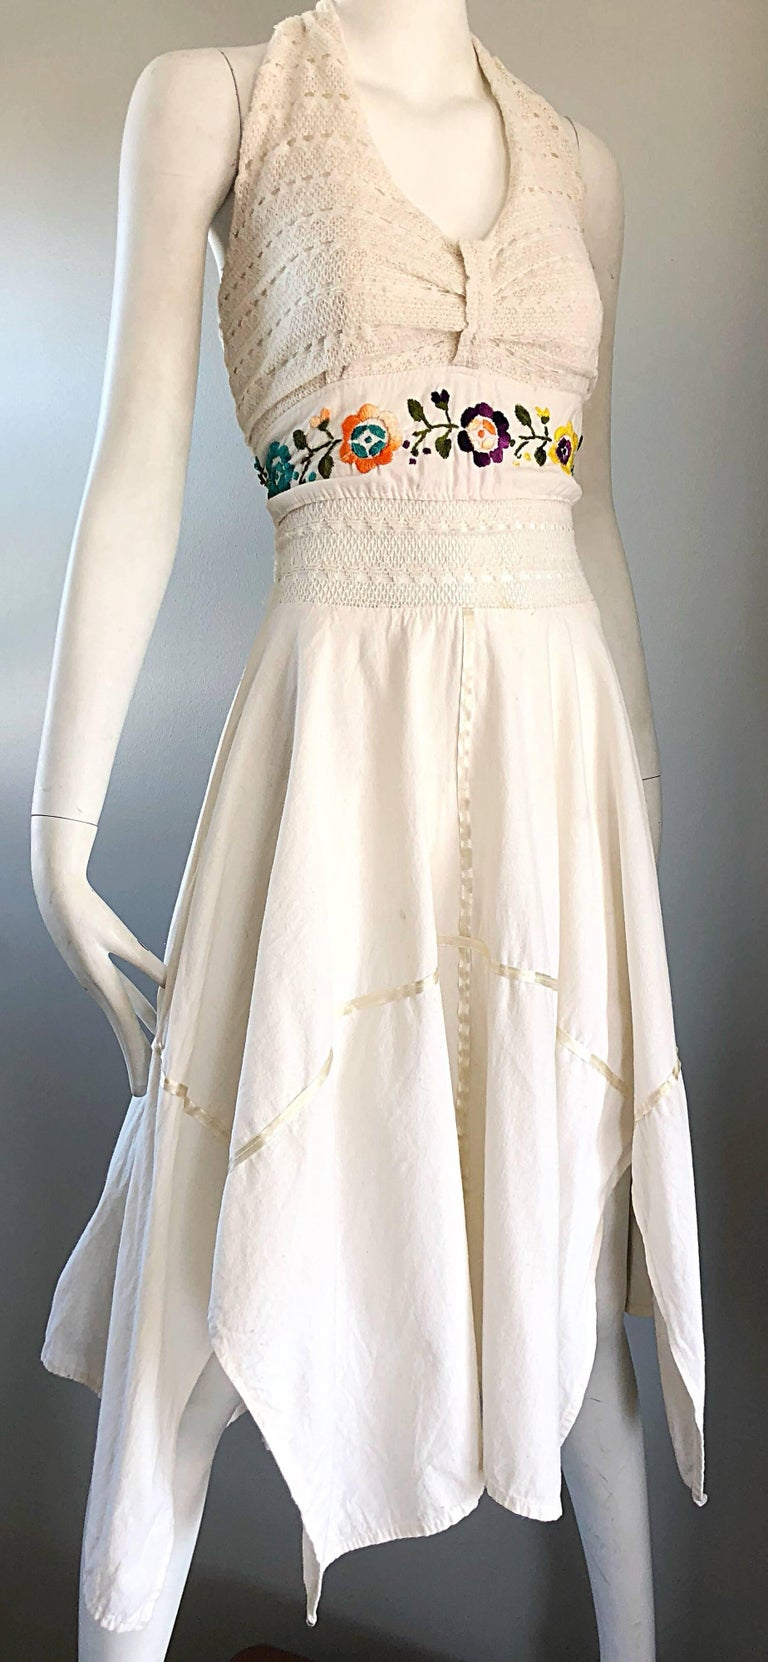 Women's Amazing 1970s Ivory Cotton Embroidered Handkerchief Hem Vintage 70s Halter Dress For Sale